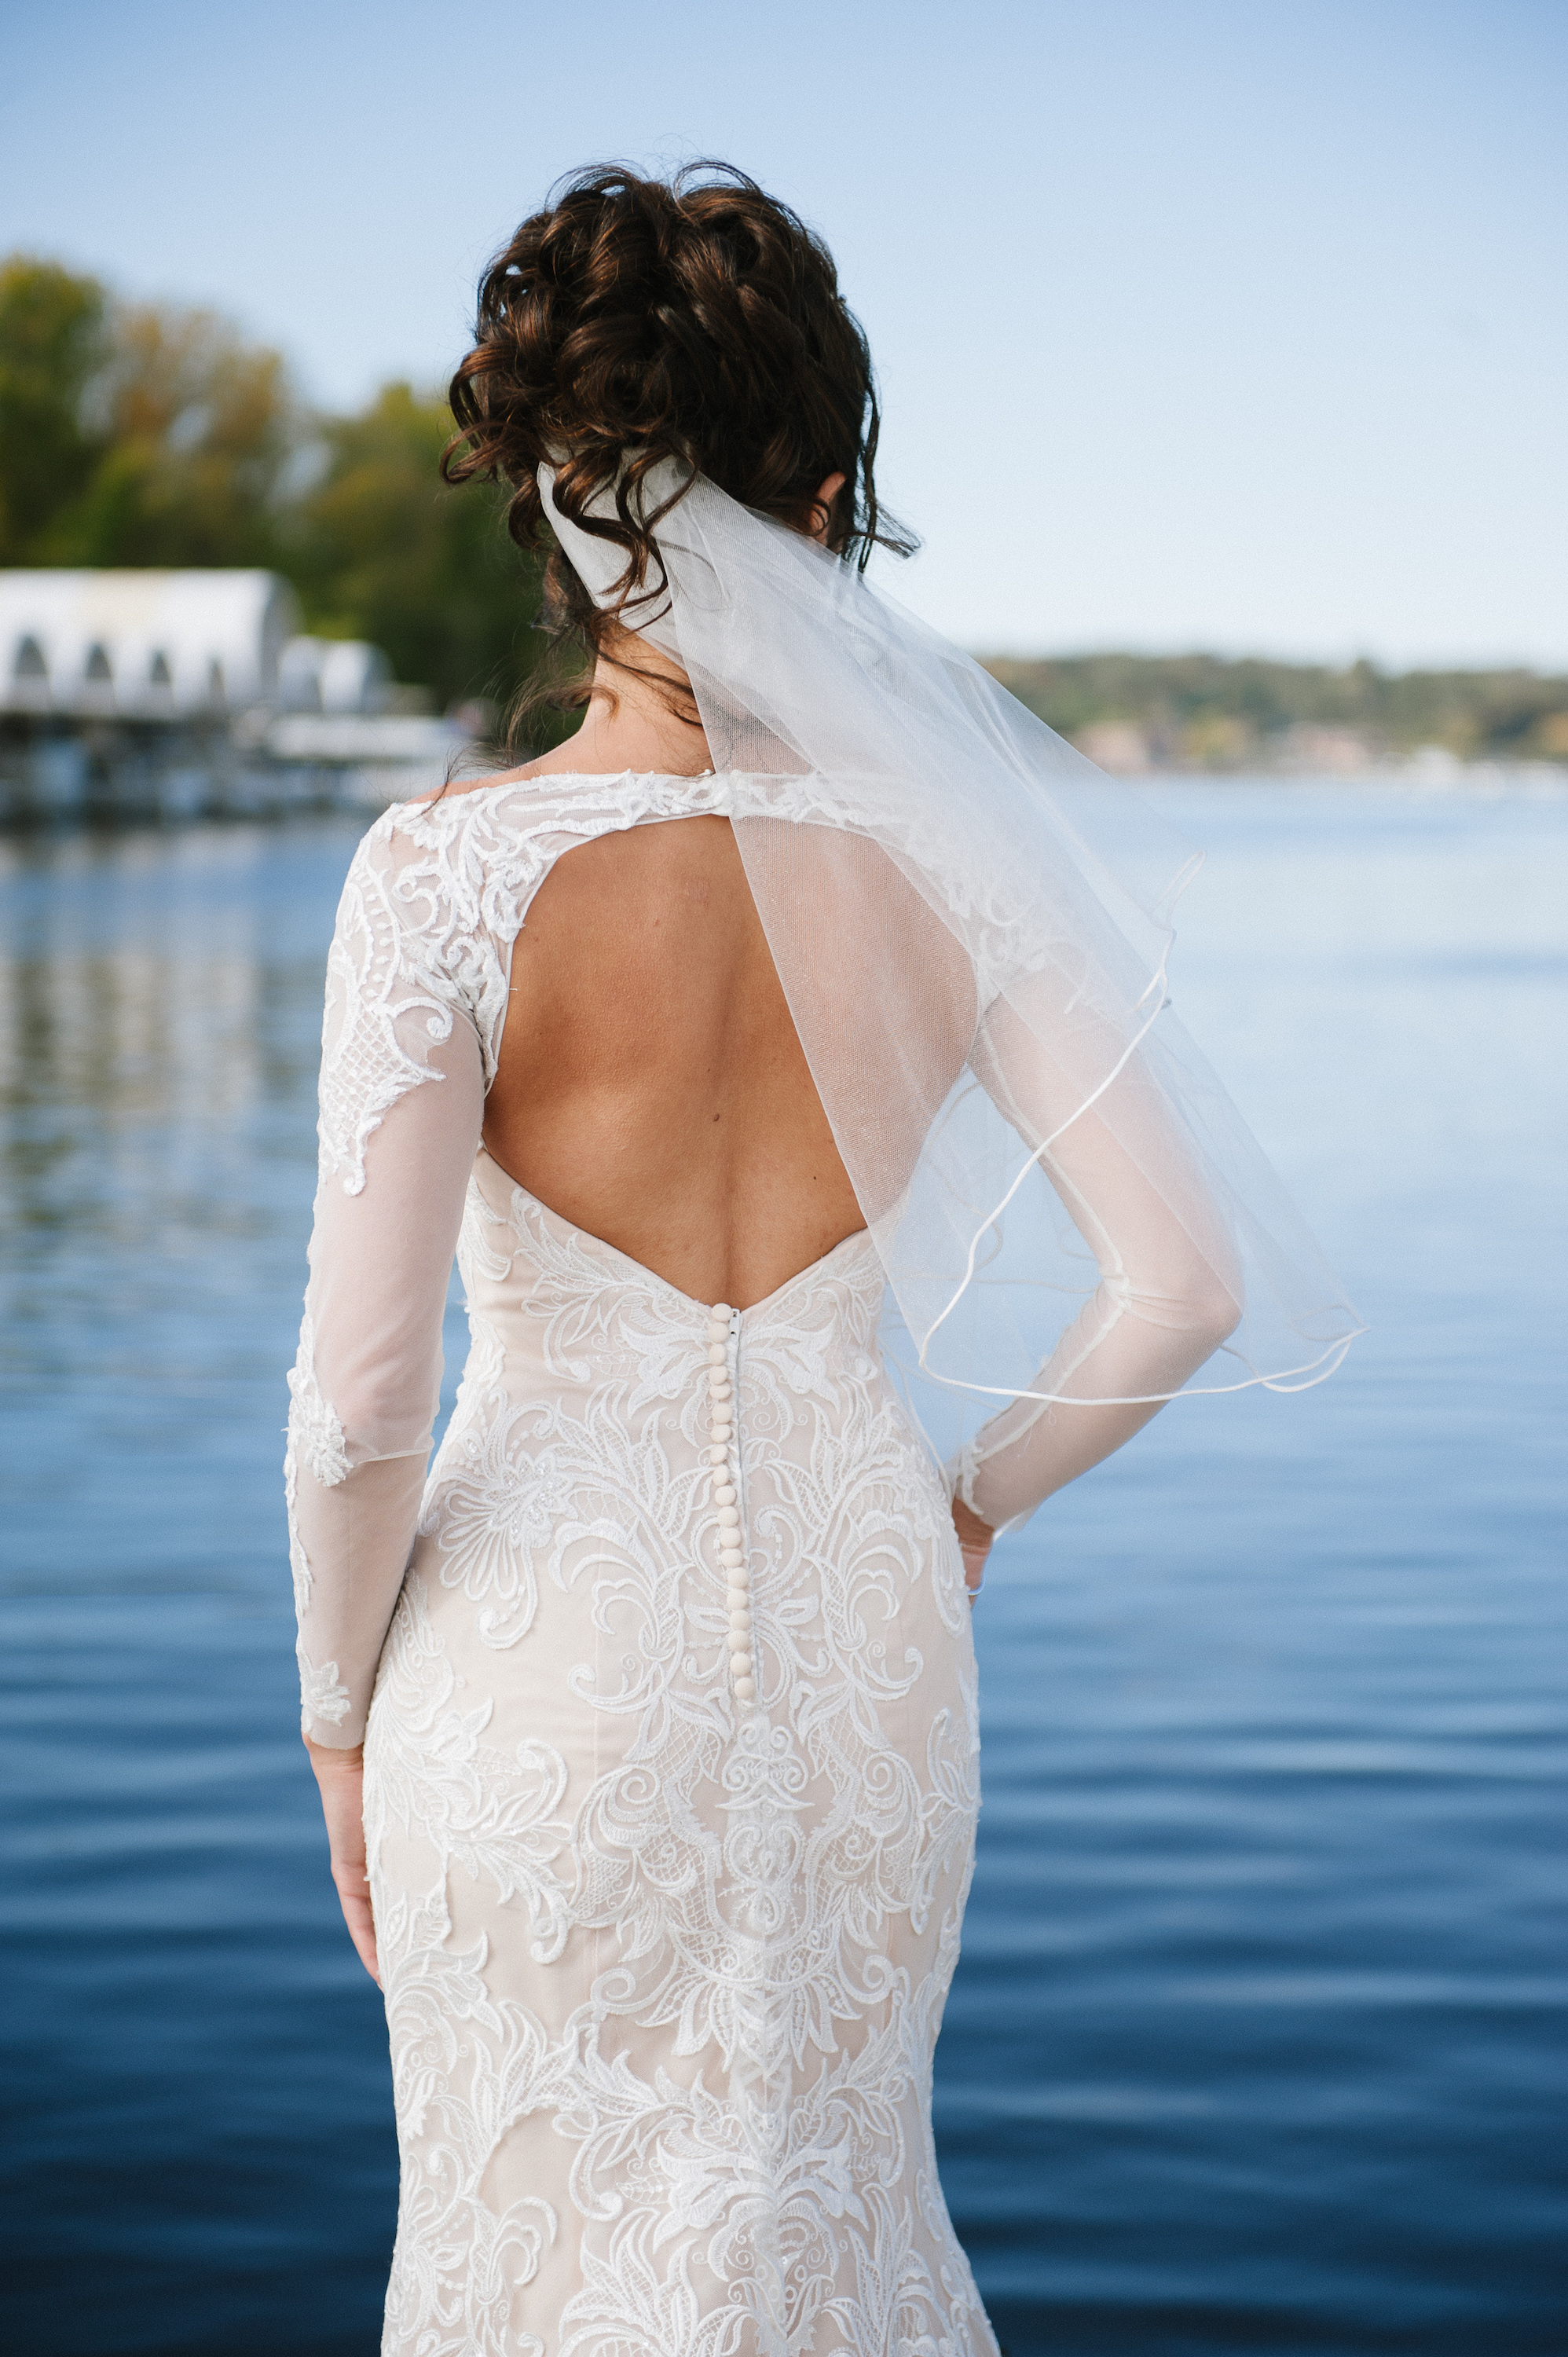 key hole wedding dress with sleeves on the dock | Dillinger Studios Minneapolis Photographer | Mexican American fusion wedding | Sixpence Events & Planning Minnesota wedding planner .jpg